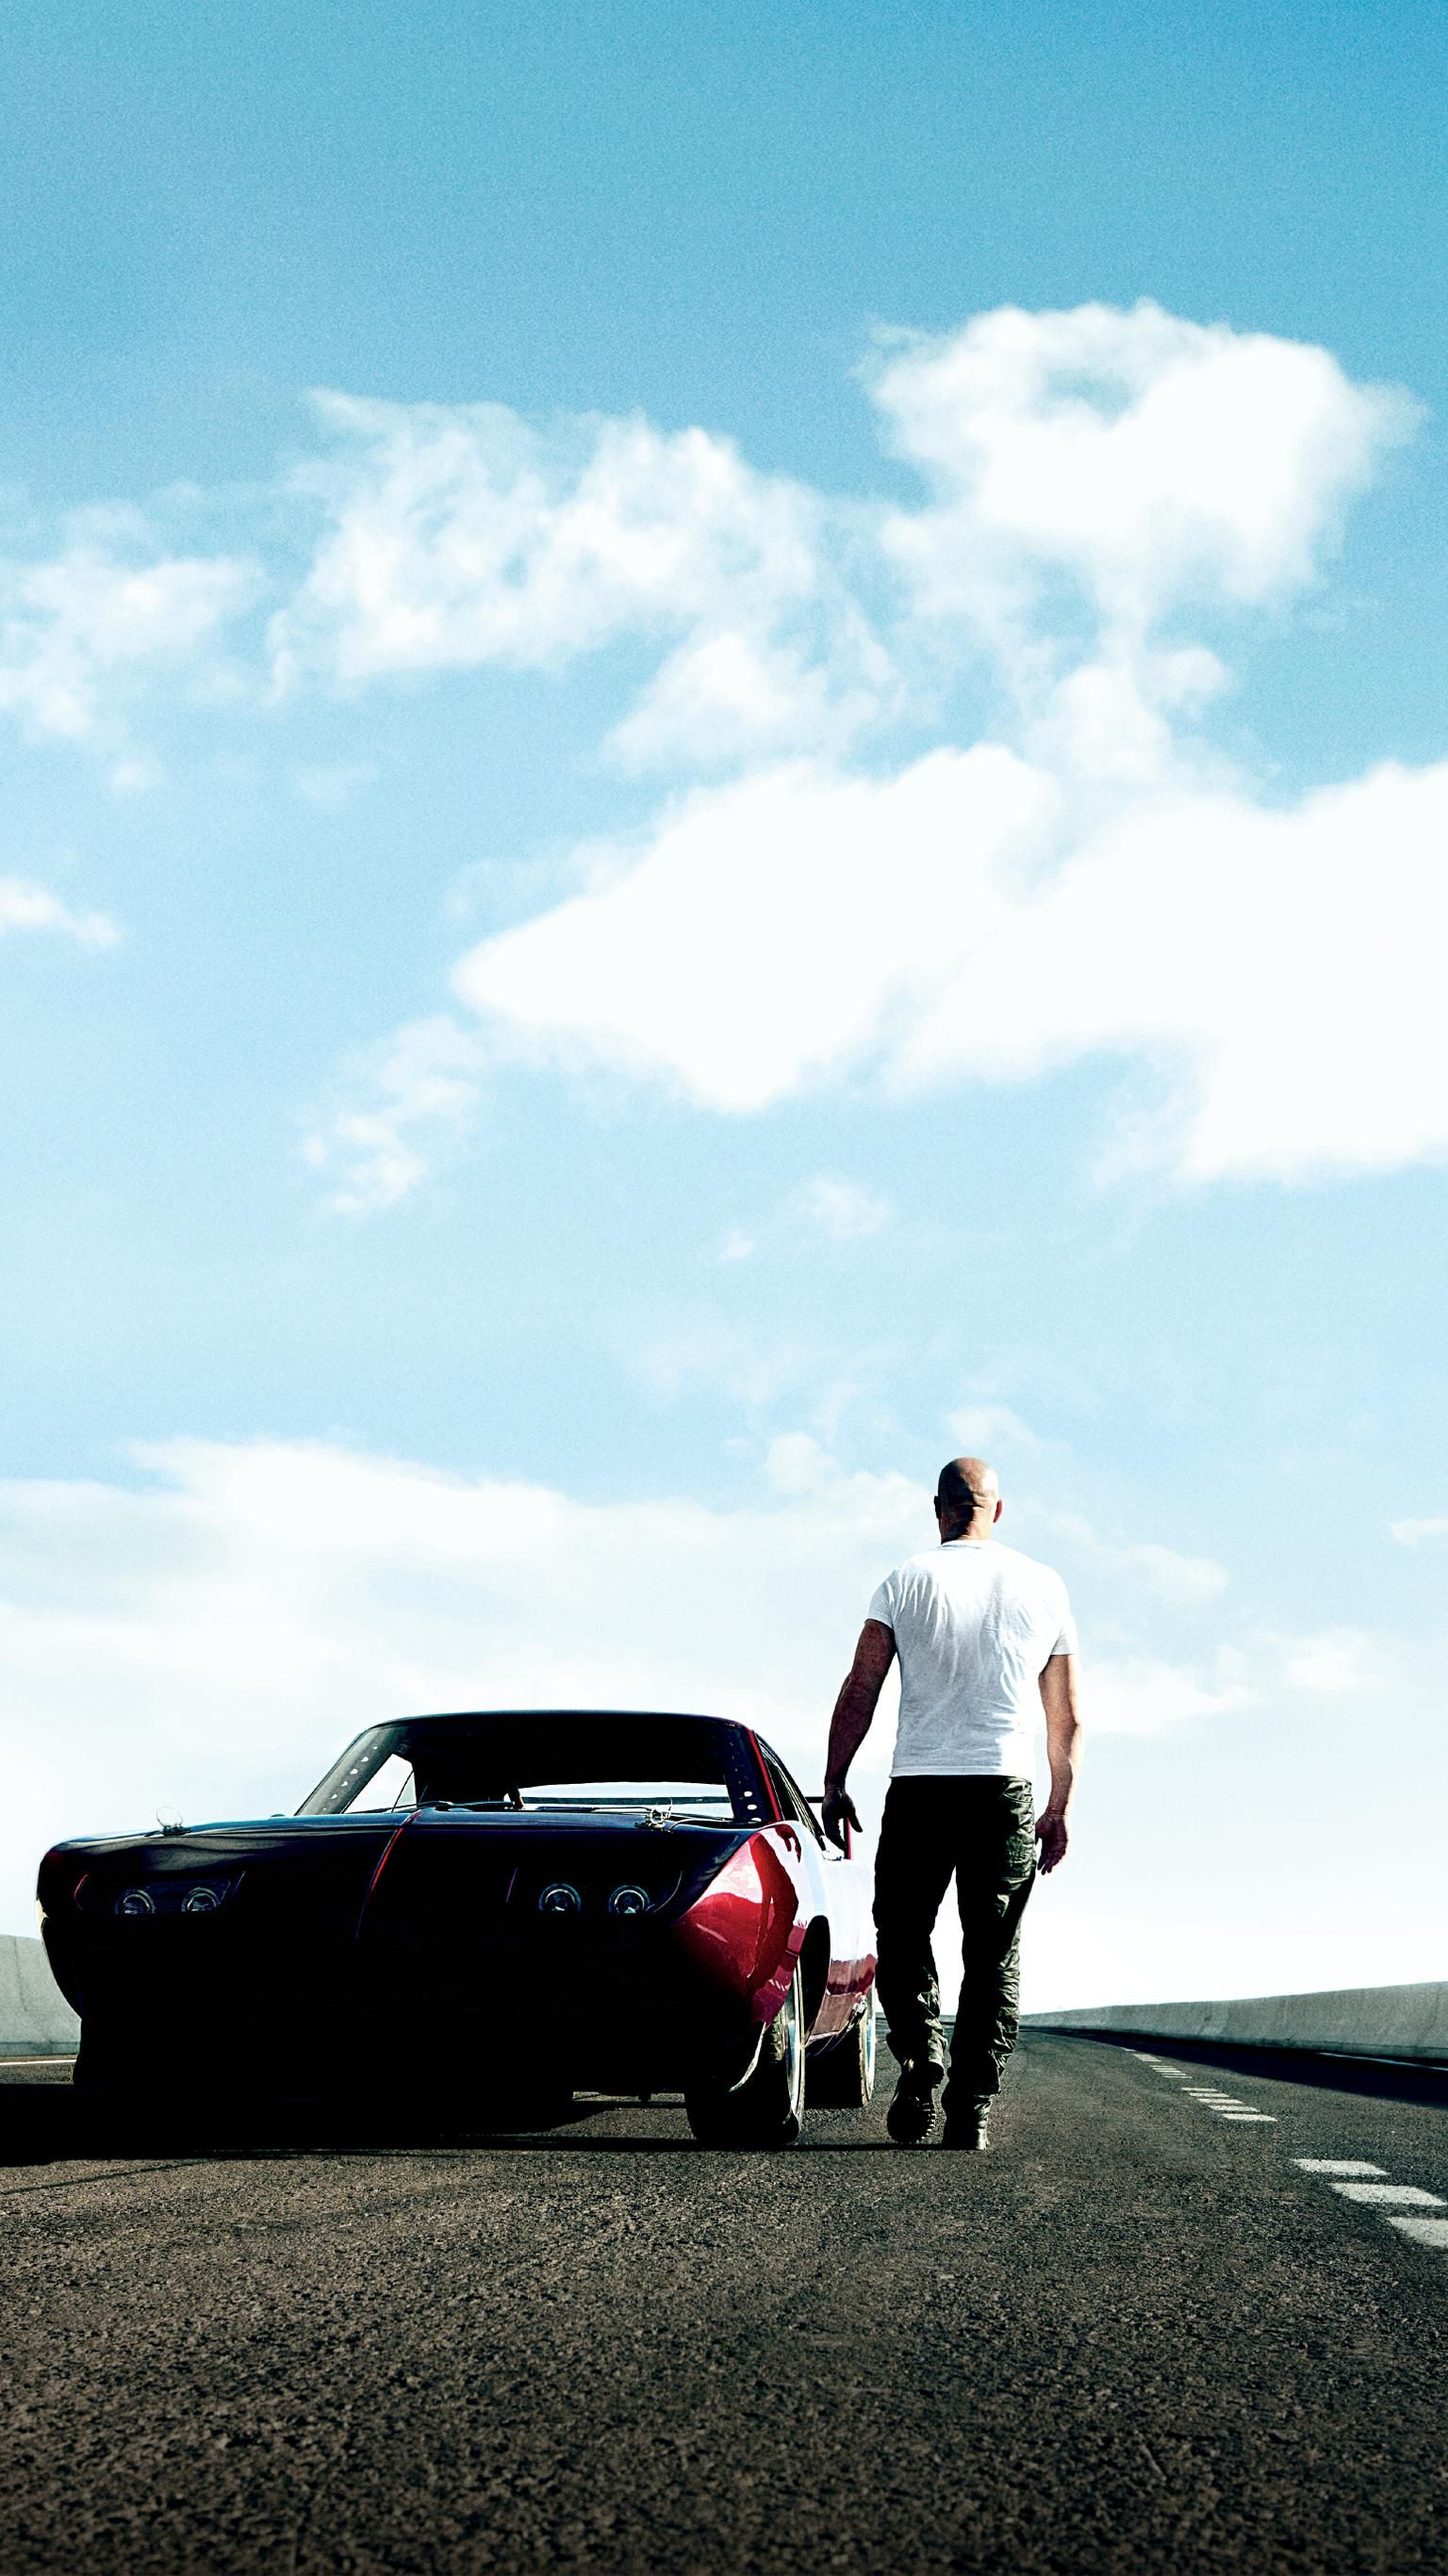 Fast Furious 6 2013 Phone Wallpaper In 2020 Fast Furious